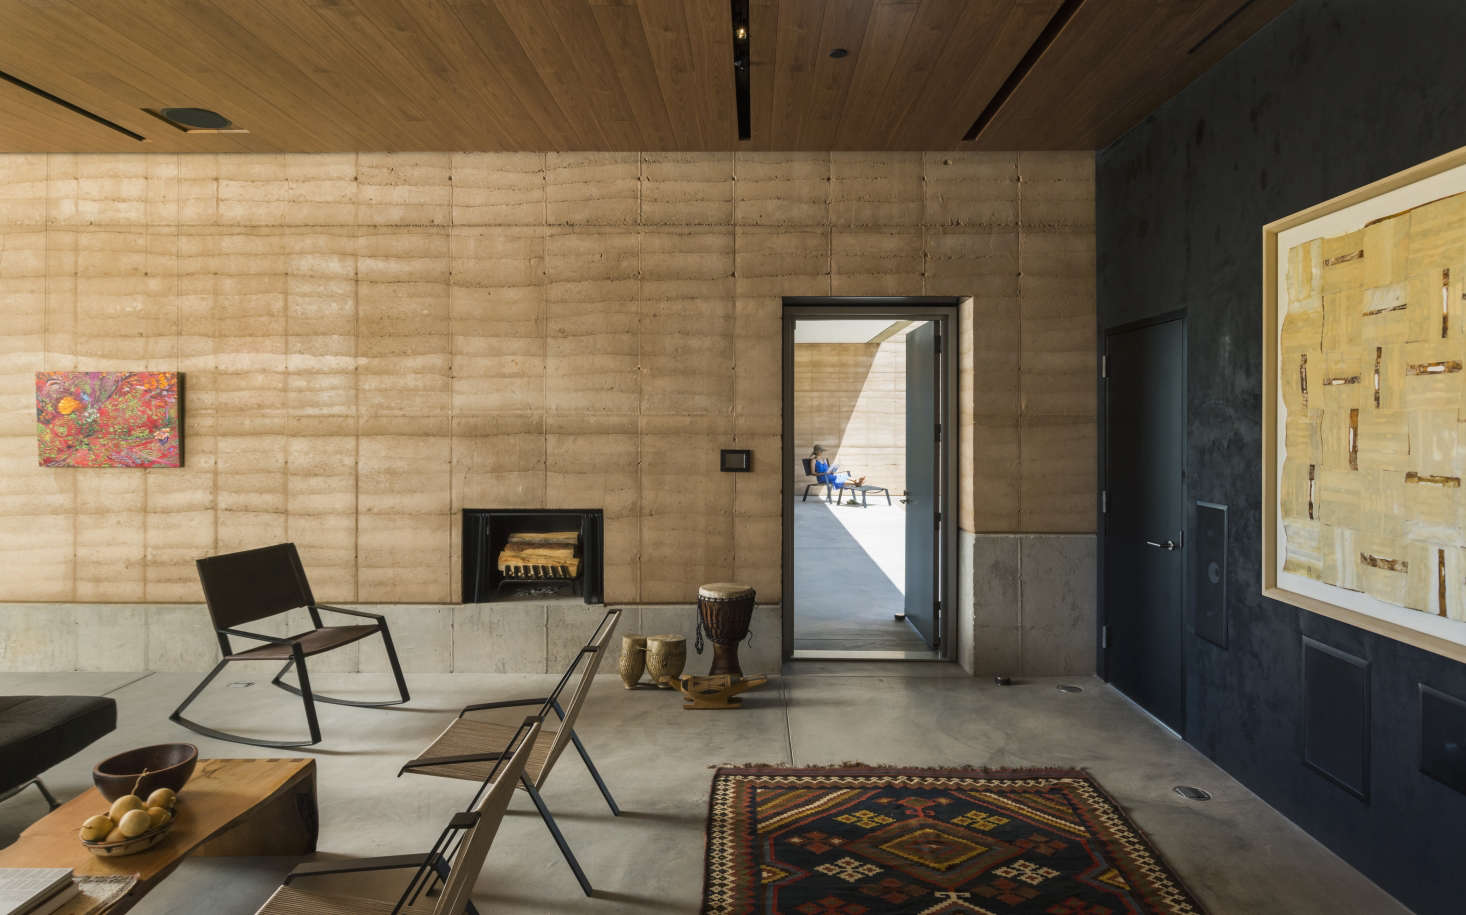 Lovely A single shou sugi ban wall in a Tuscon Arizona house designed by Dust